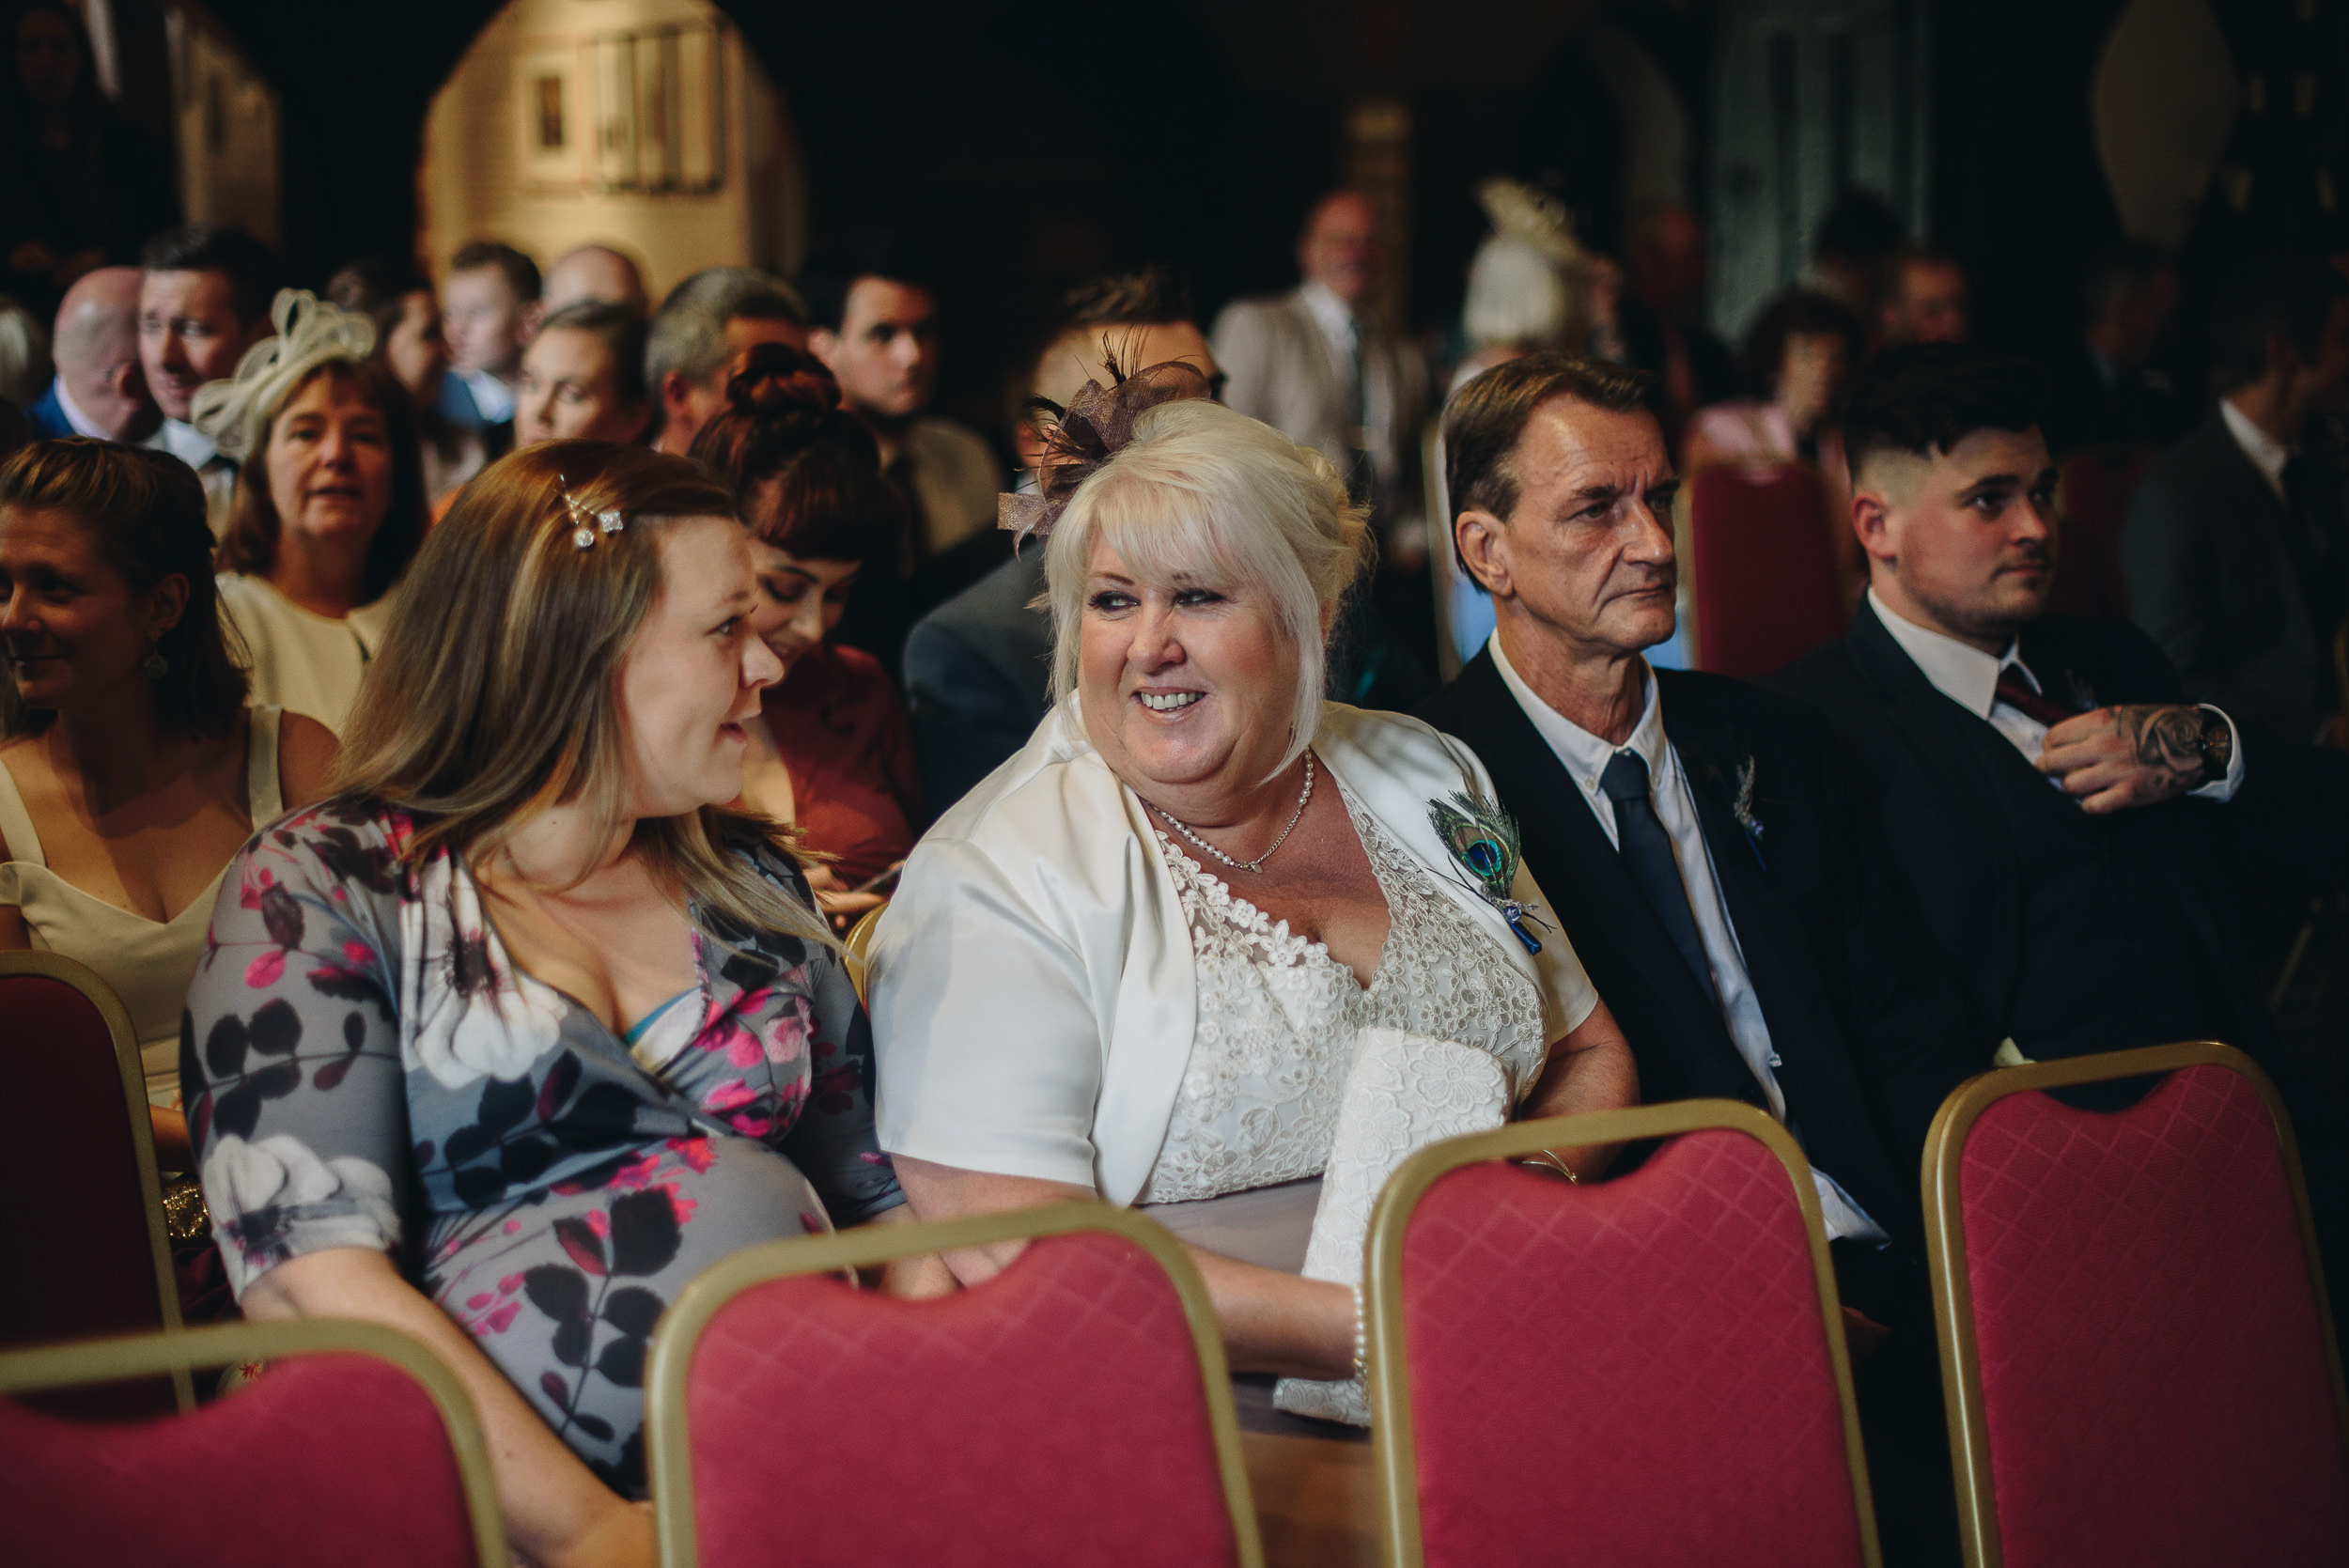 Smithills-hall-wedding-manchester-the-barlow-edgworth-hadfield-7.jpg